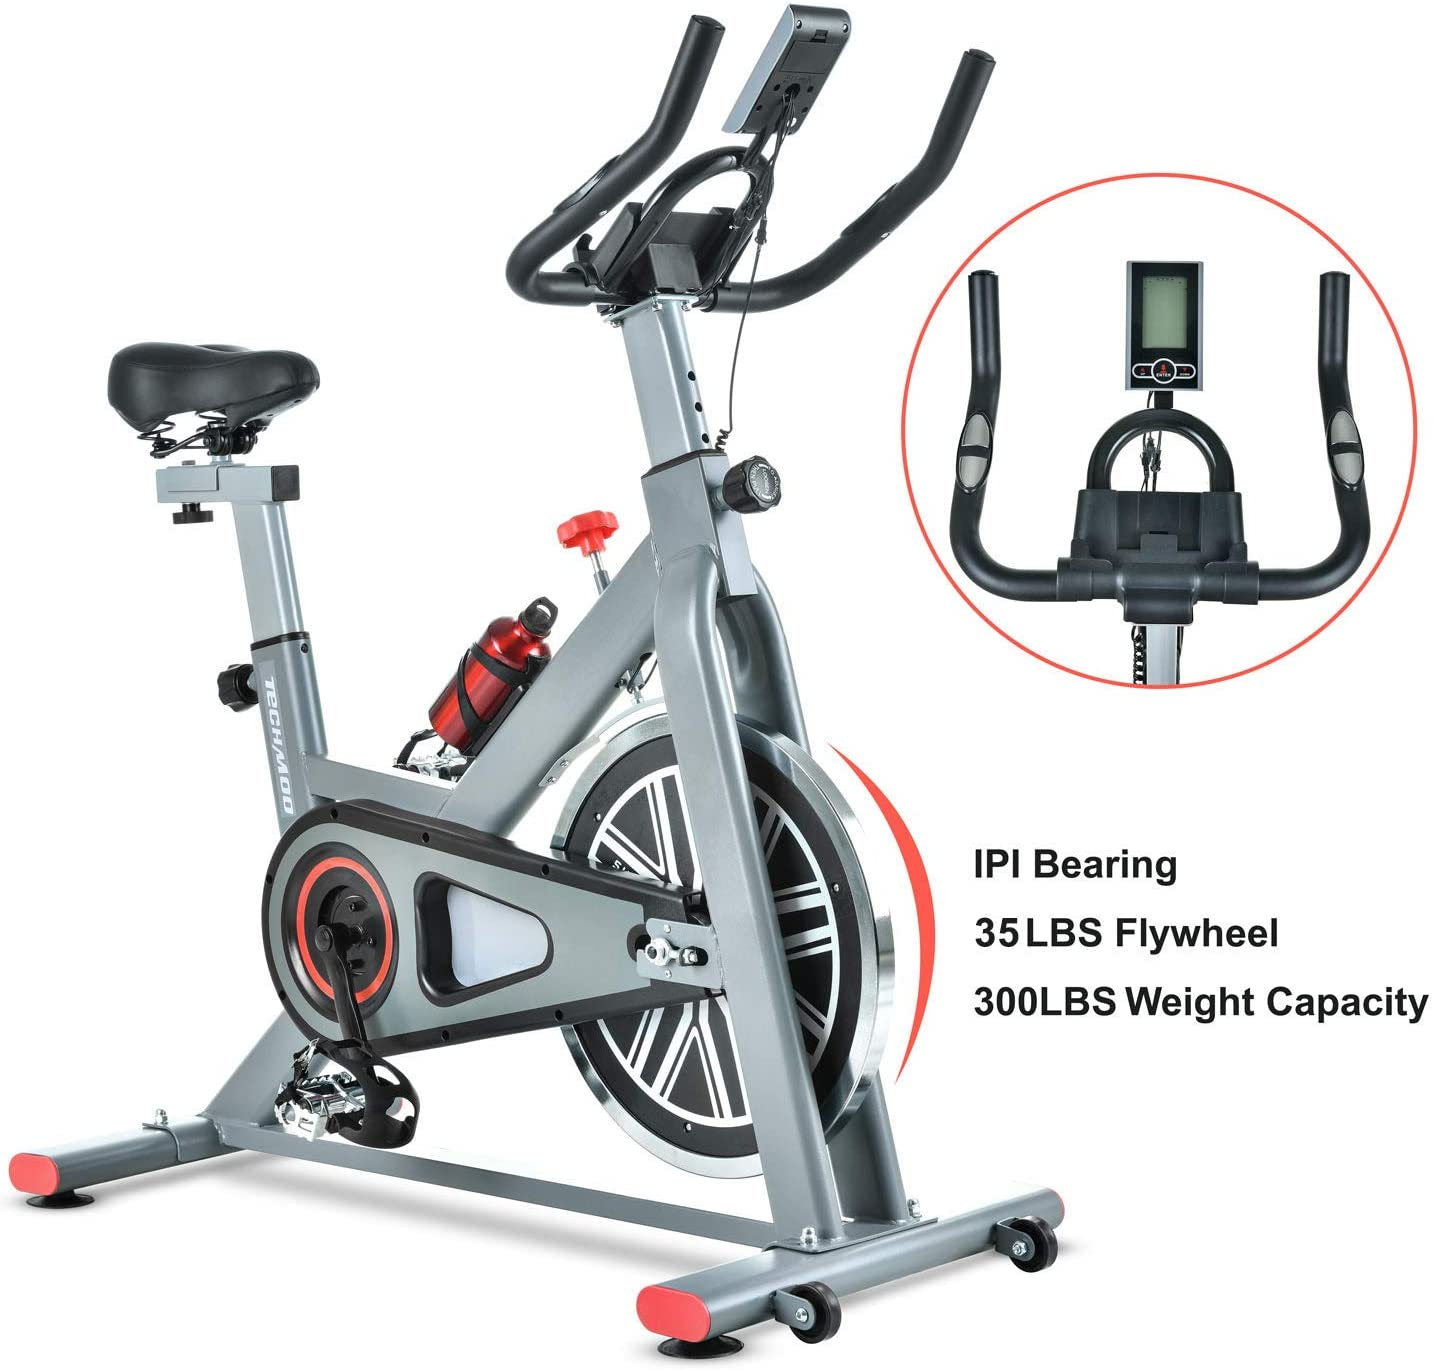 TECHMOO Indoor Exercise Bike Fitness Upright Exercise Bike Magnetic Belt Drive Home Cycling Exercise Bike Indoor Stationary Bike Bicycle for Cardio Workout Losing Weight